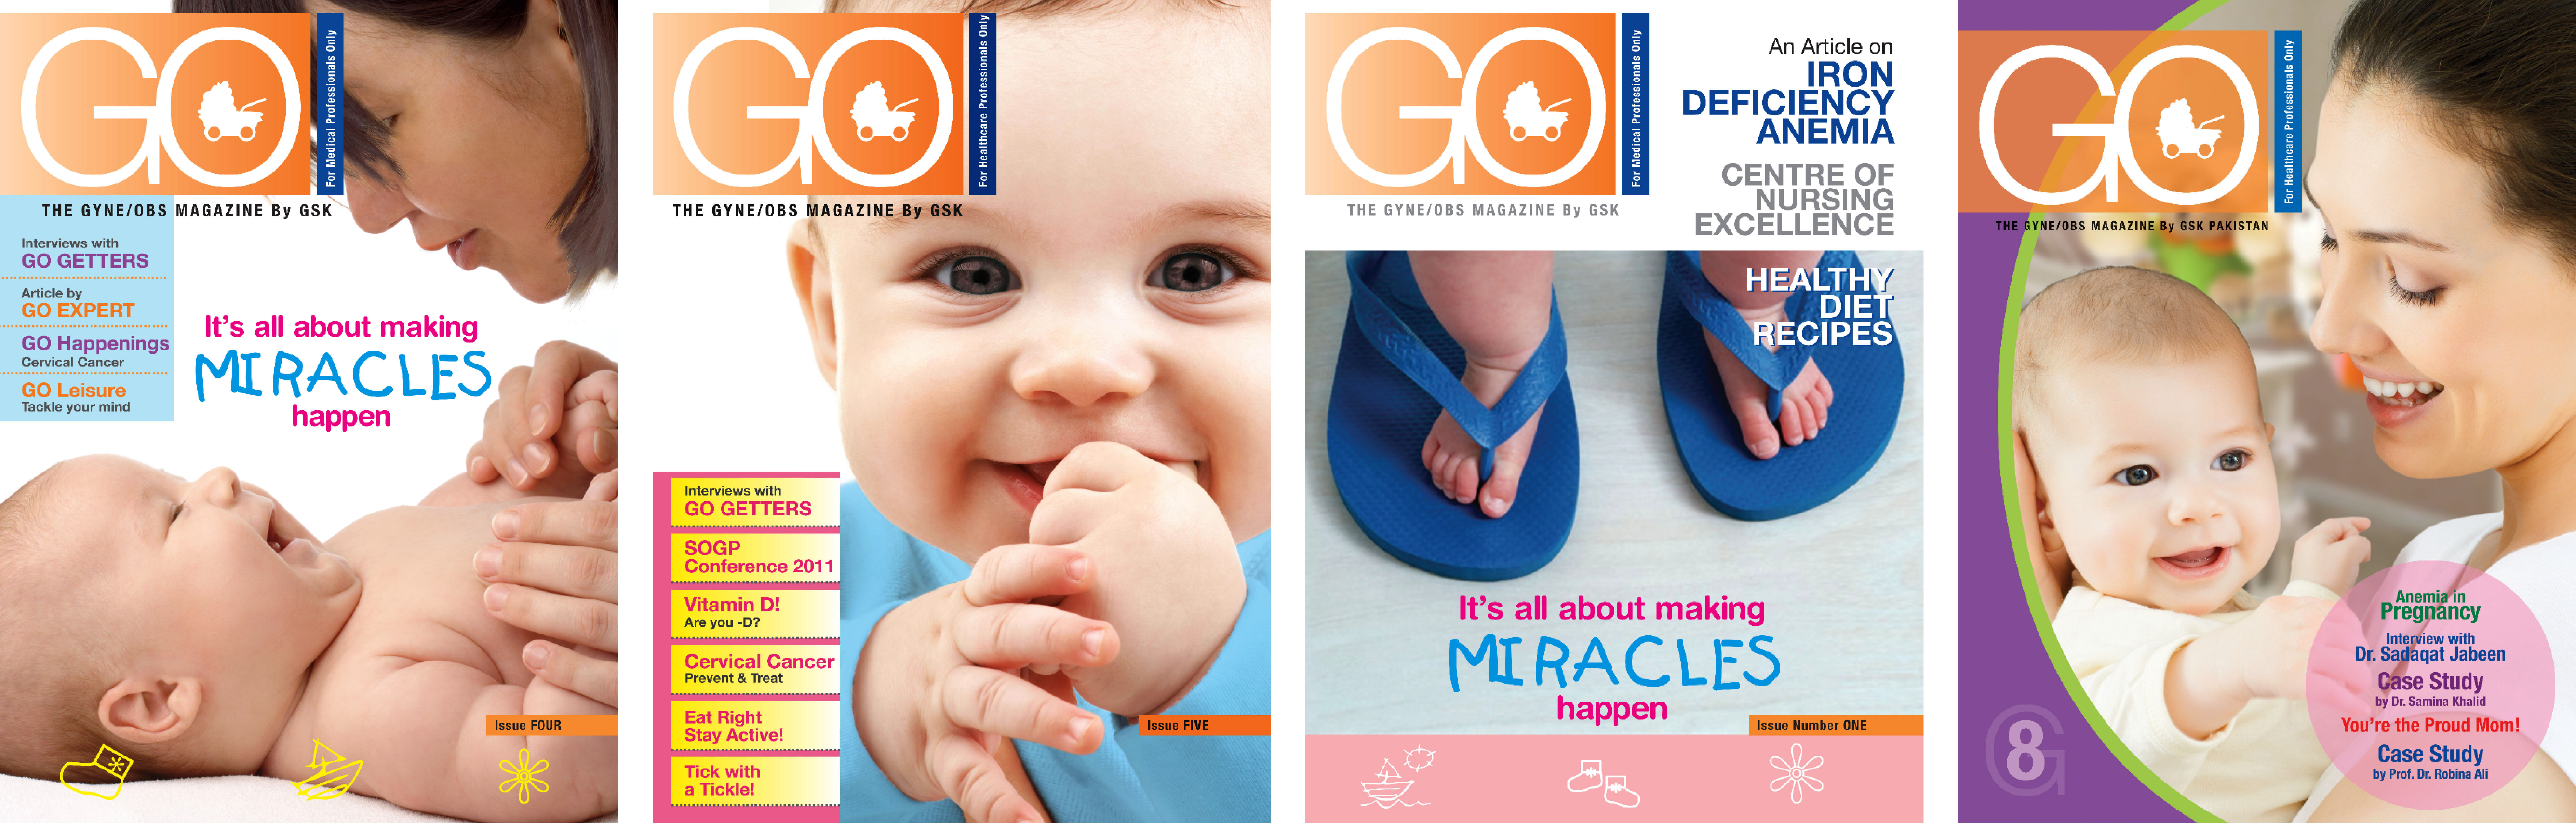 GO. The Gyne/OBS Magazine by GSK